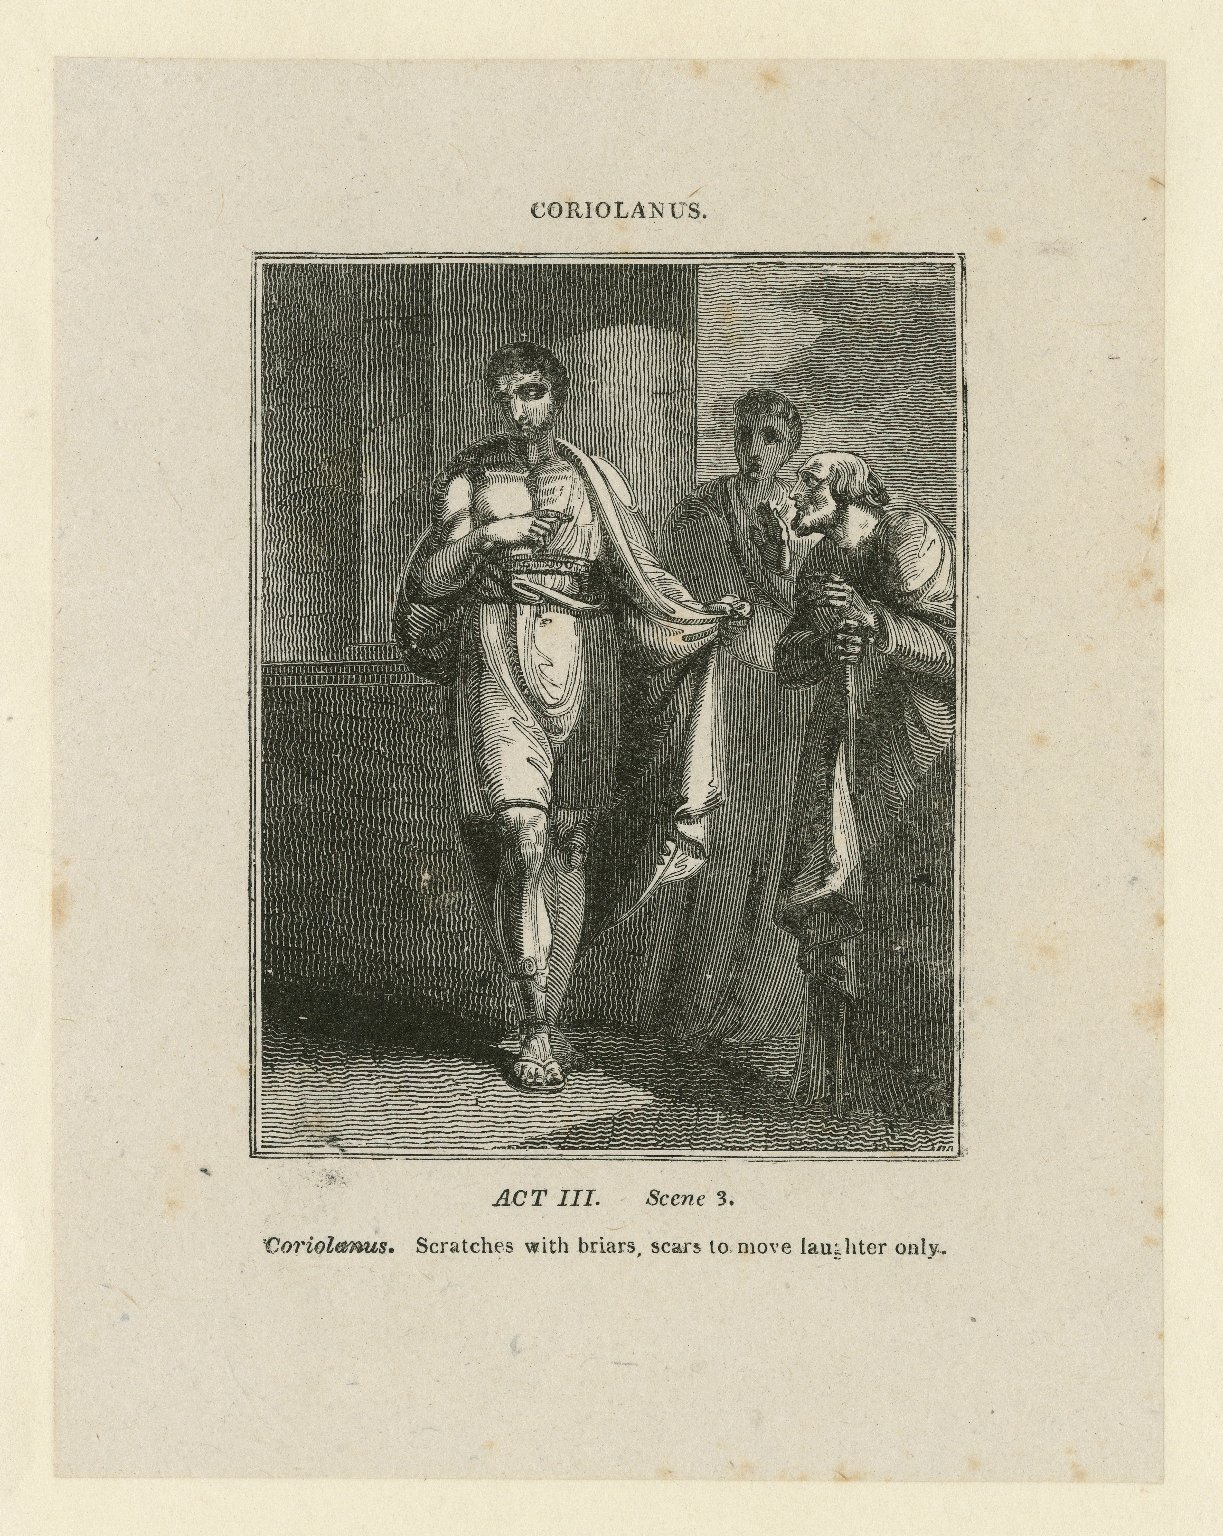 Coriolanus, act III, scene 3, Coriolanus: Scratches with briars, scars to move laughter only [graphic] / engraved by Allen Robert Branston ; [John Thurston].